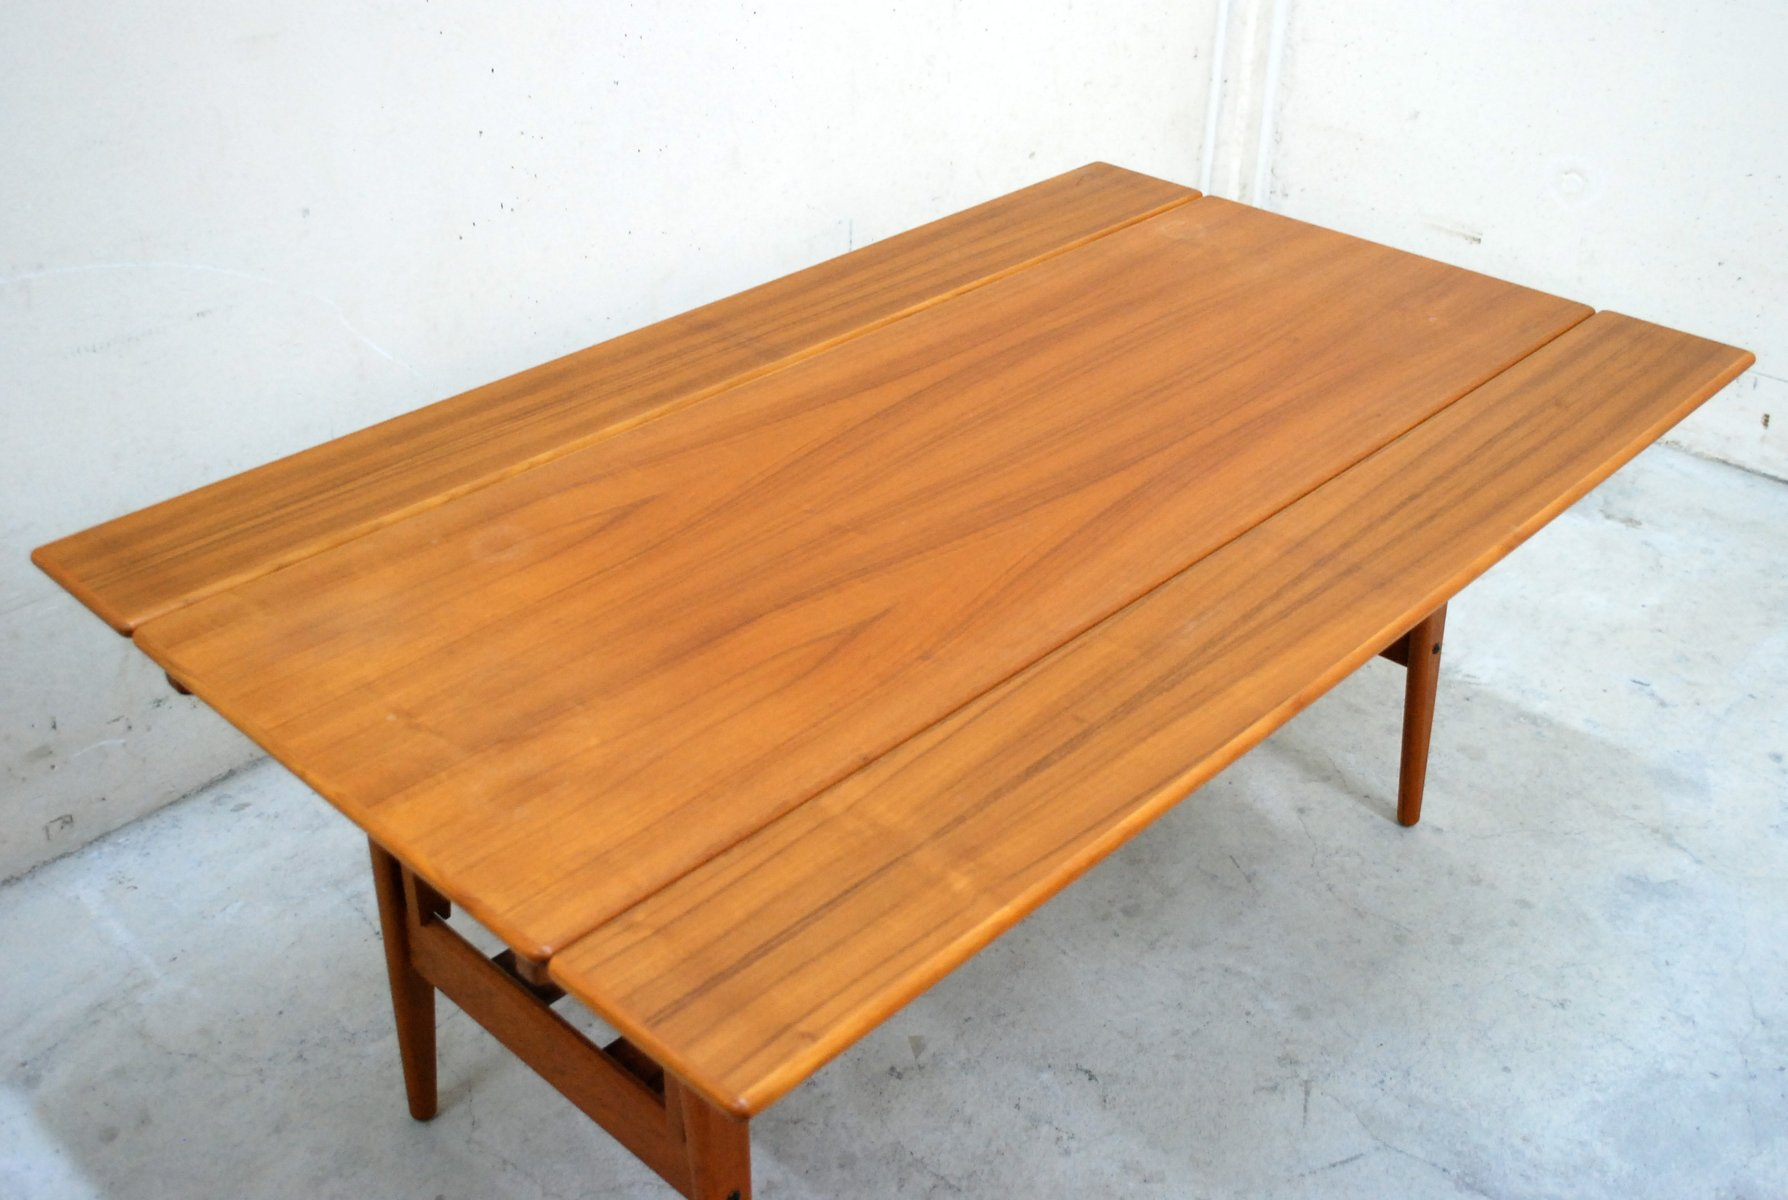 Vintage Danish Convertible Metaphoric Dining Table from Trioh for